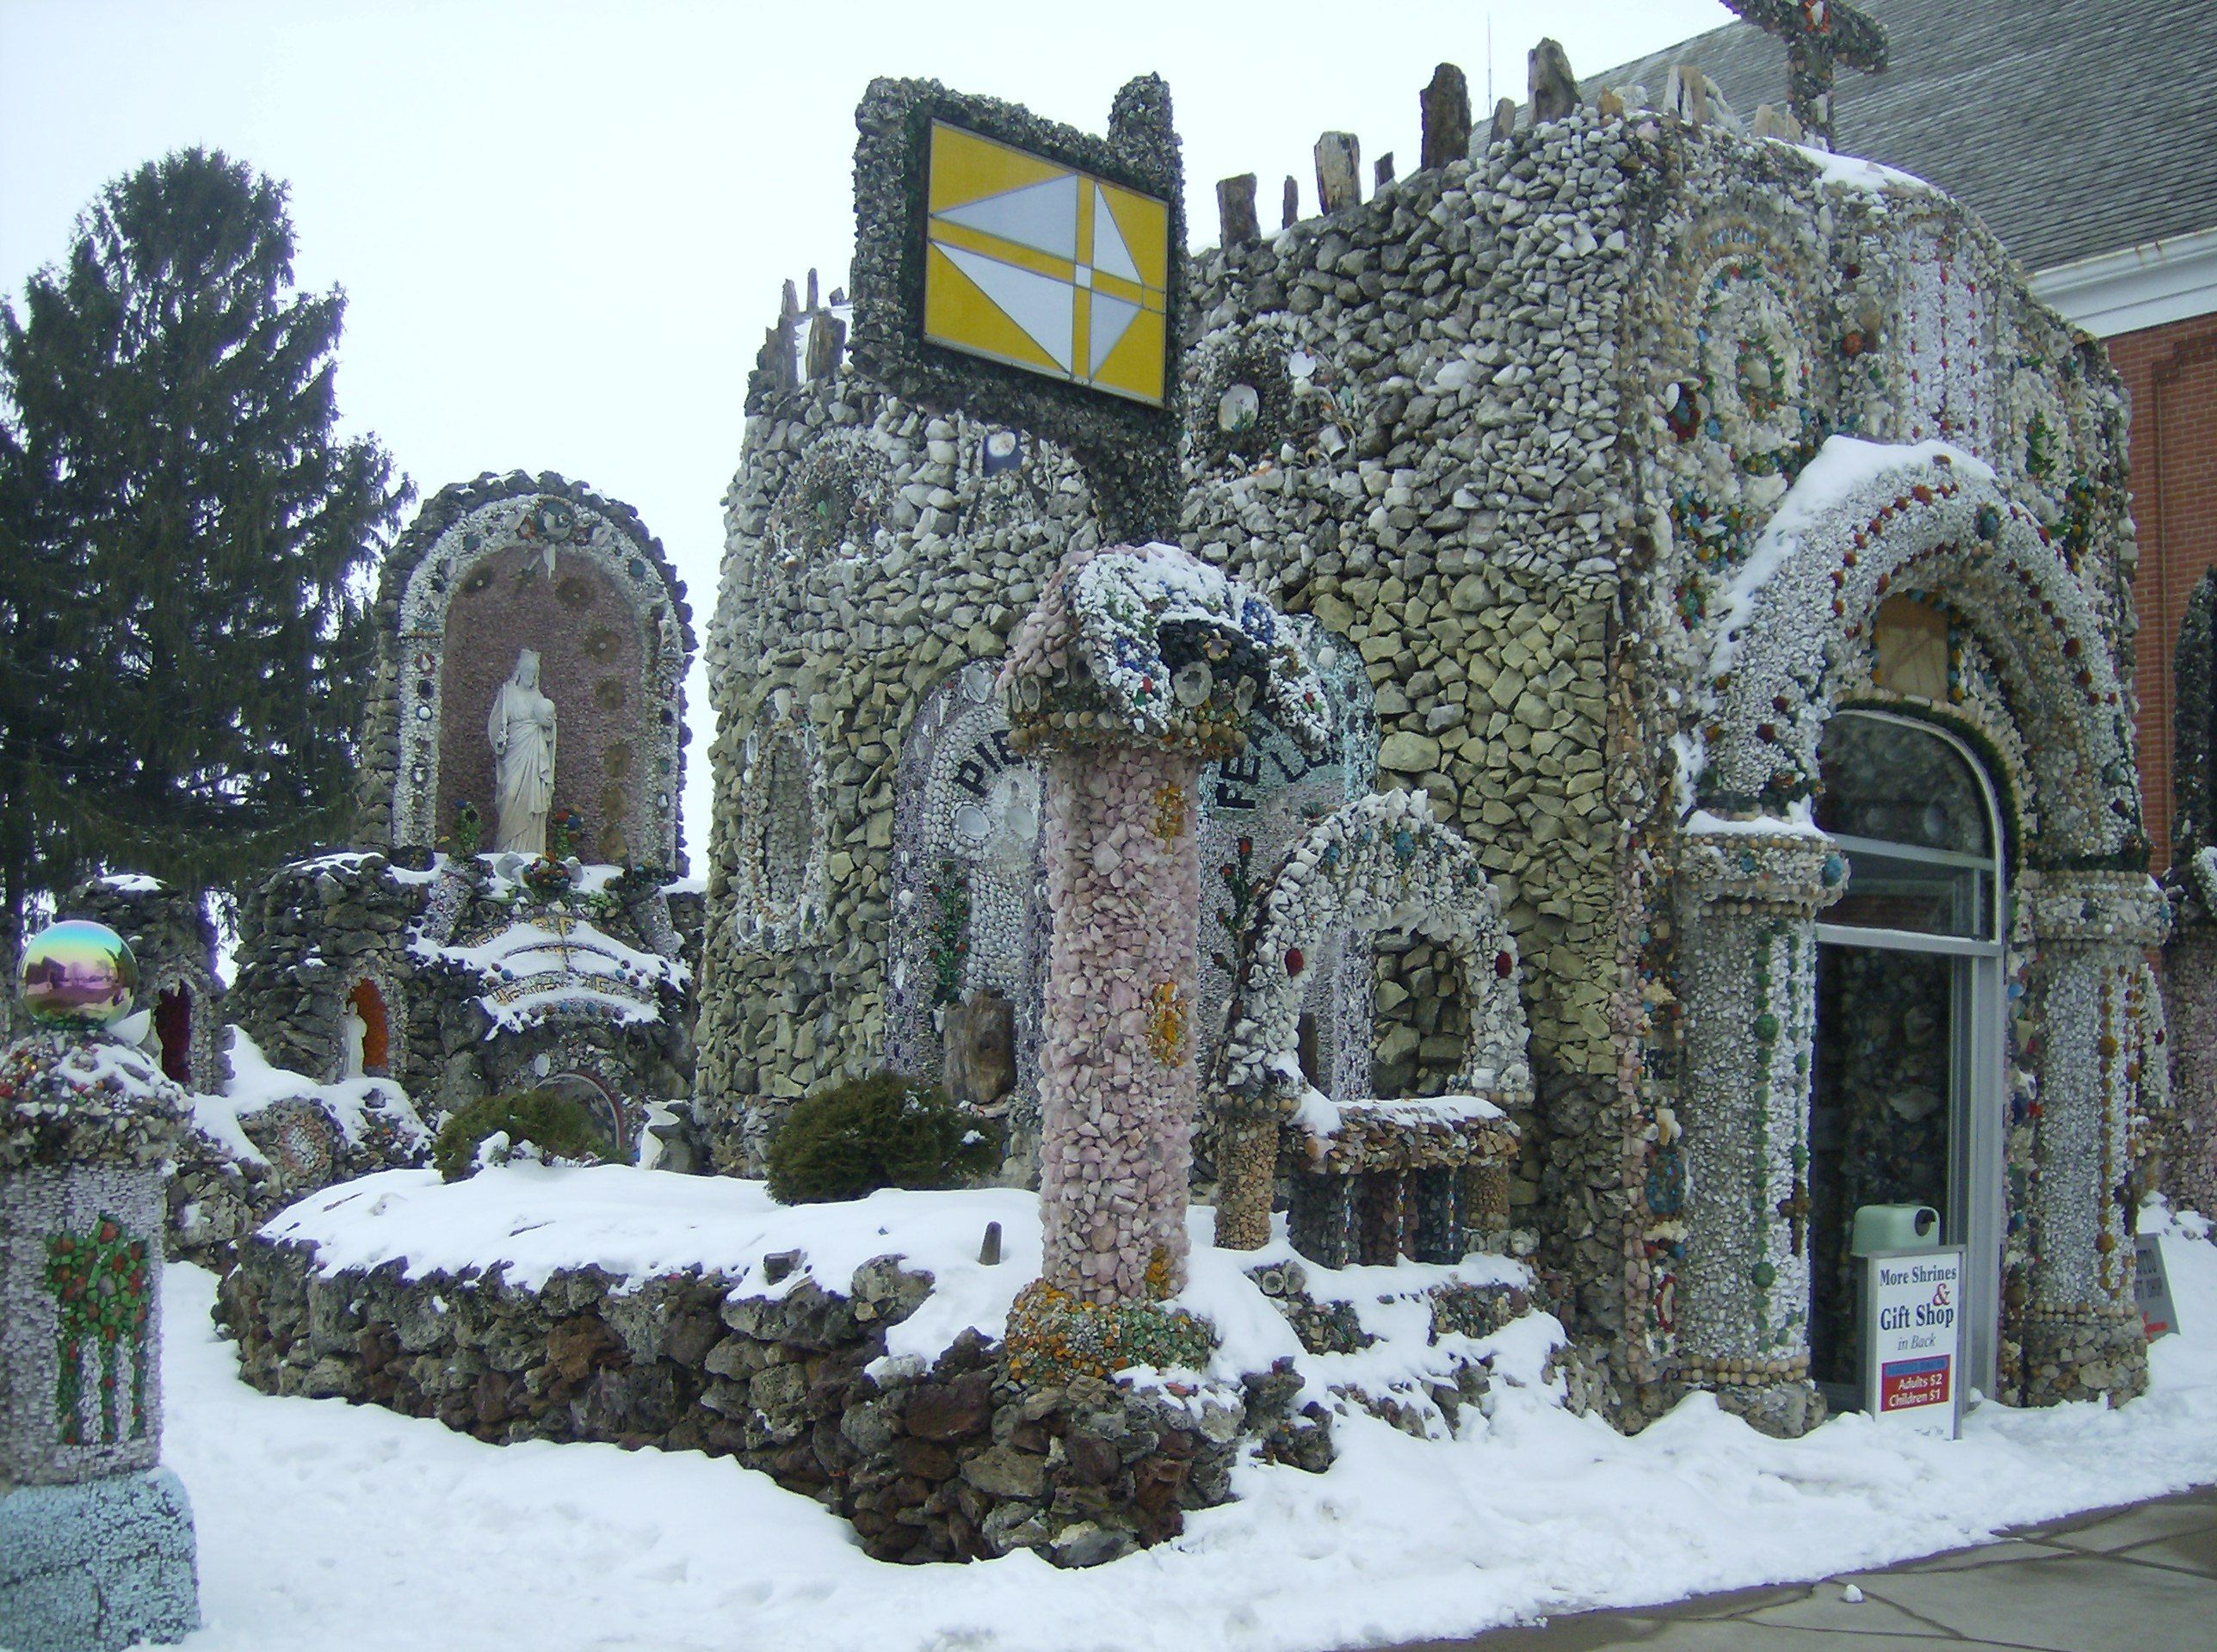 the dickeyville grotto though not as mysterious is an amazing